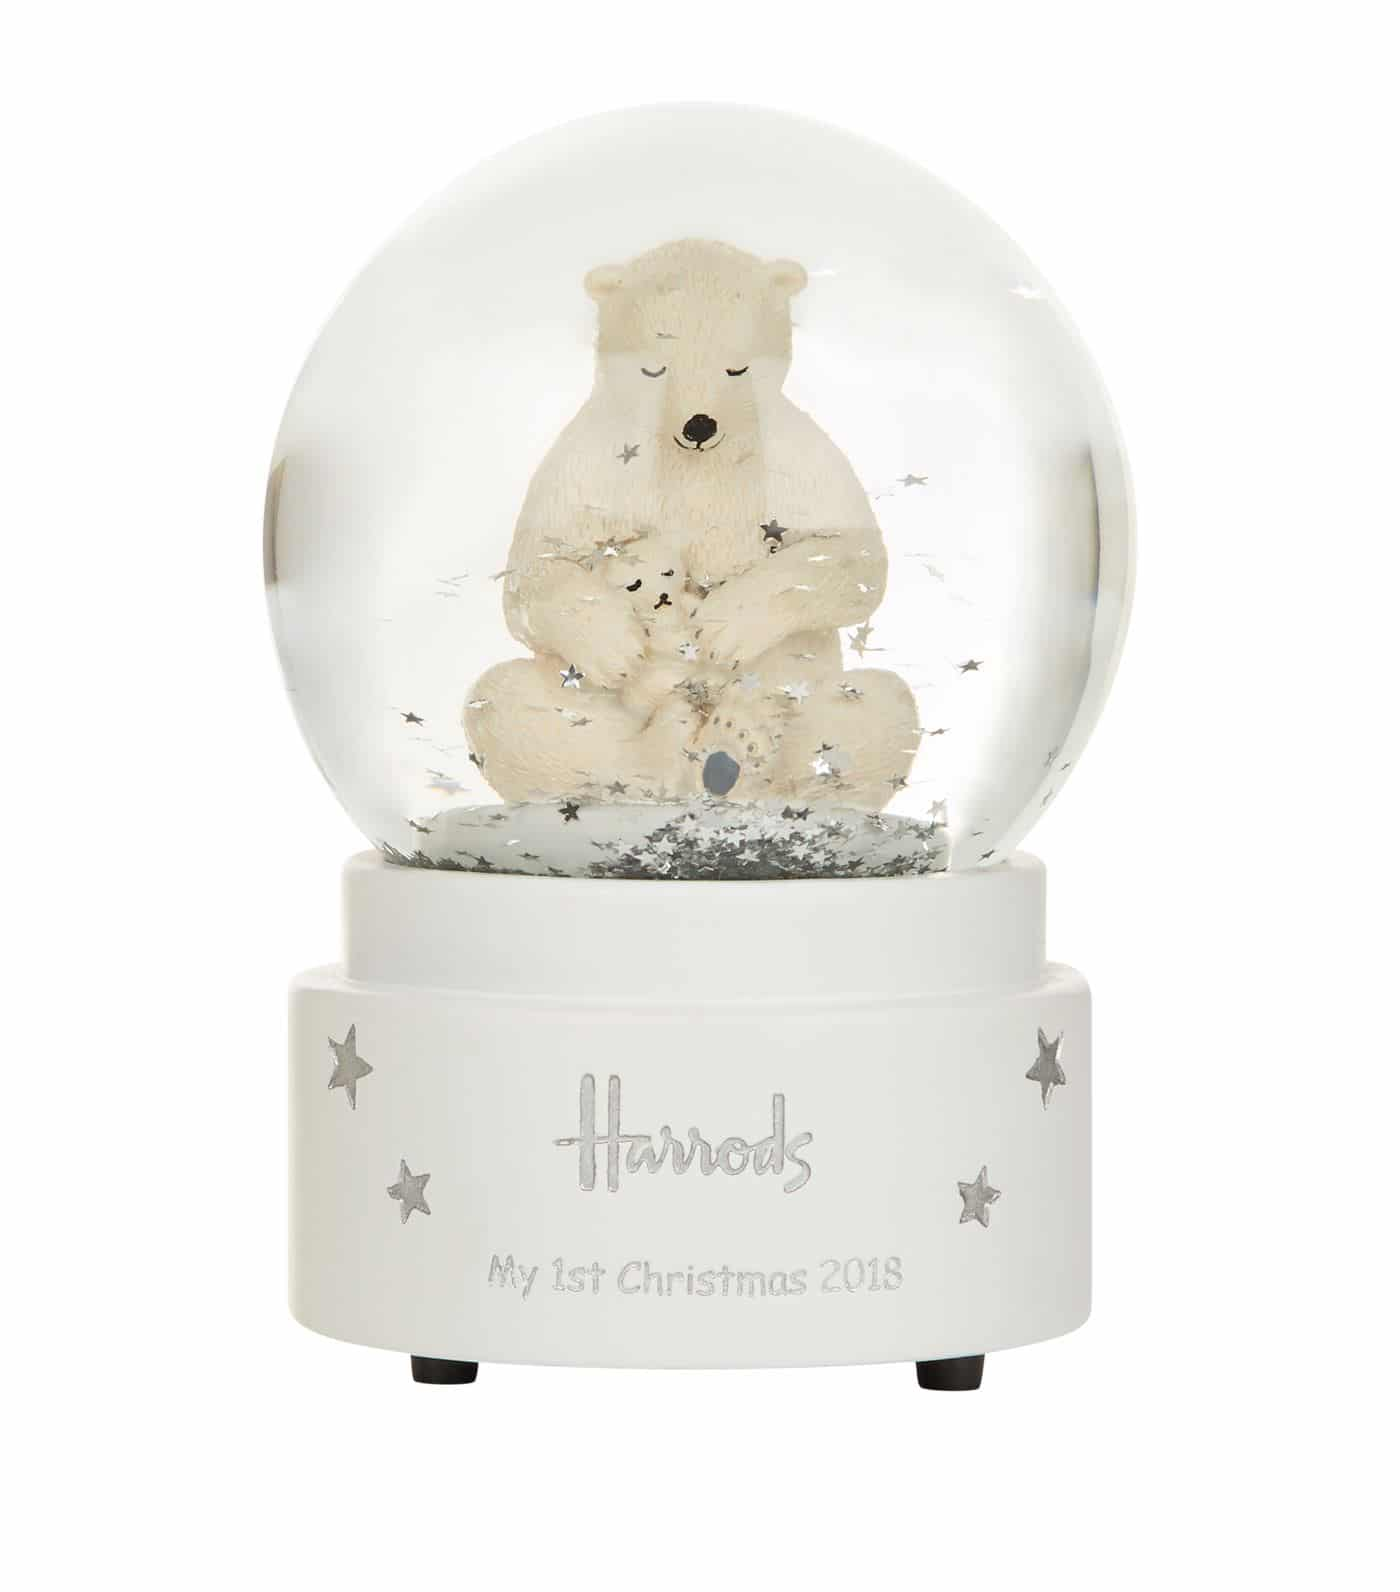 Harrods — My First Christmas — Snow Globe